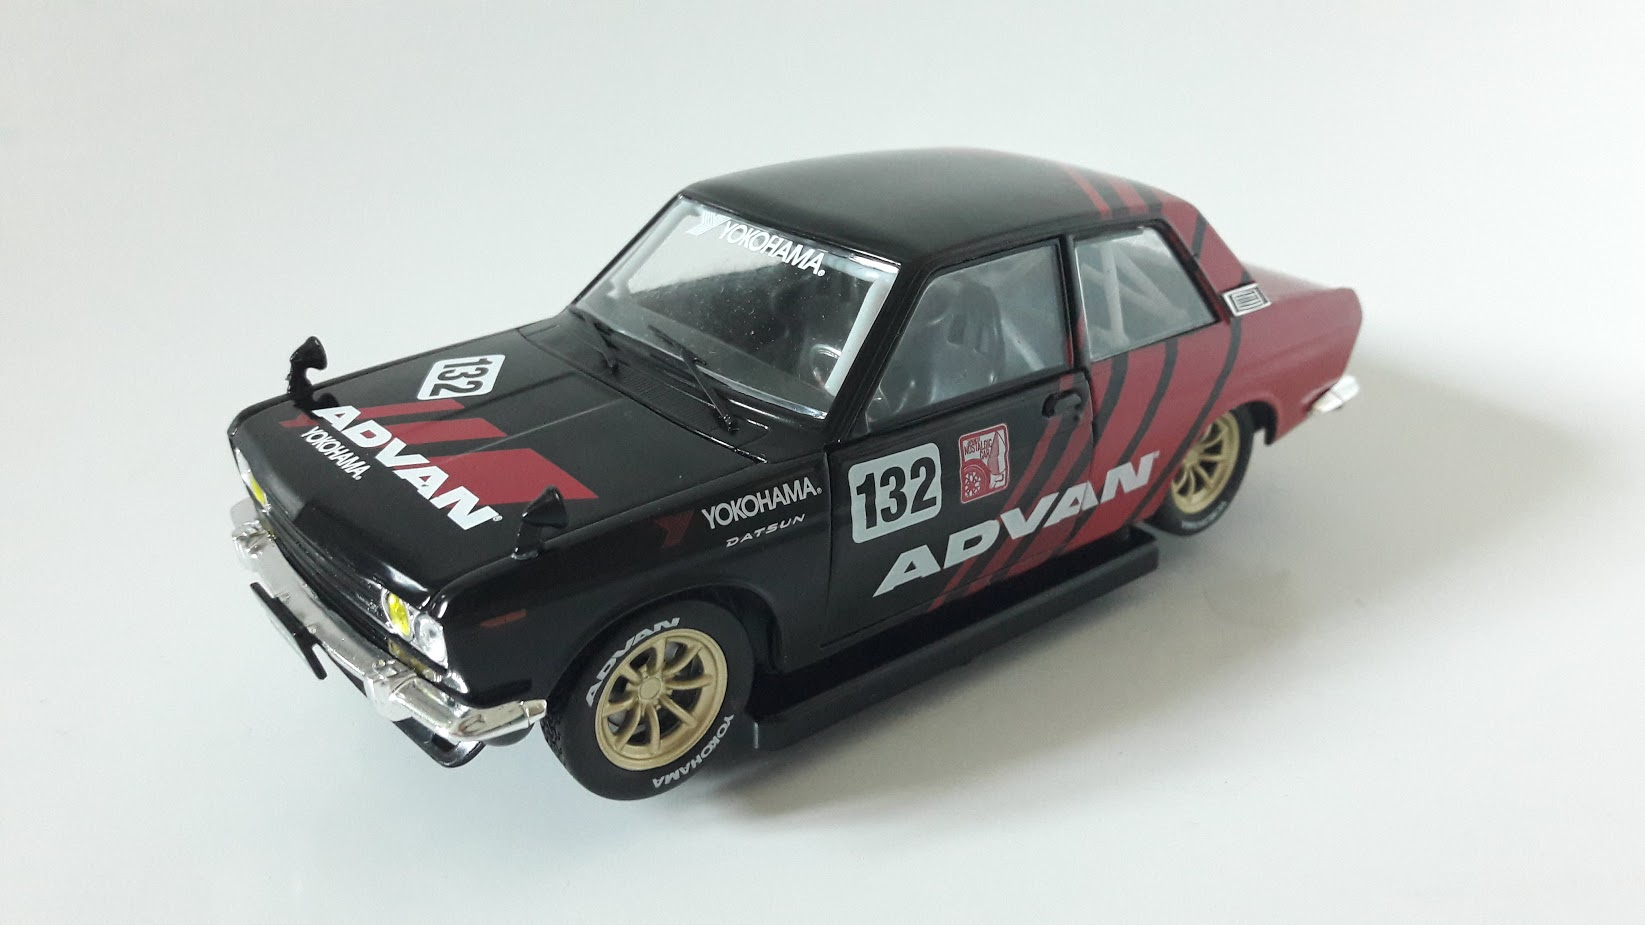 Datsun 510 Toy Car, Die Cast, And Hot Wheels - Japan version (1970) front image (front cover)